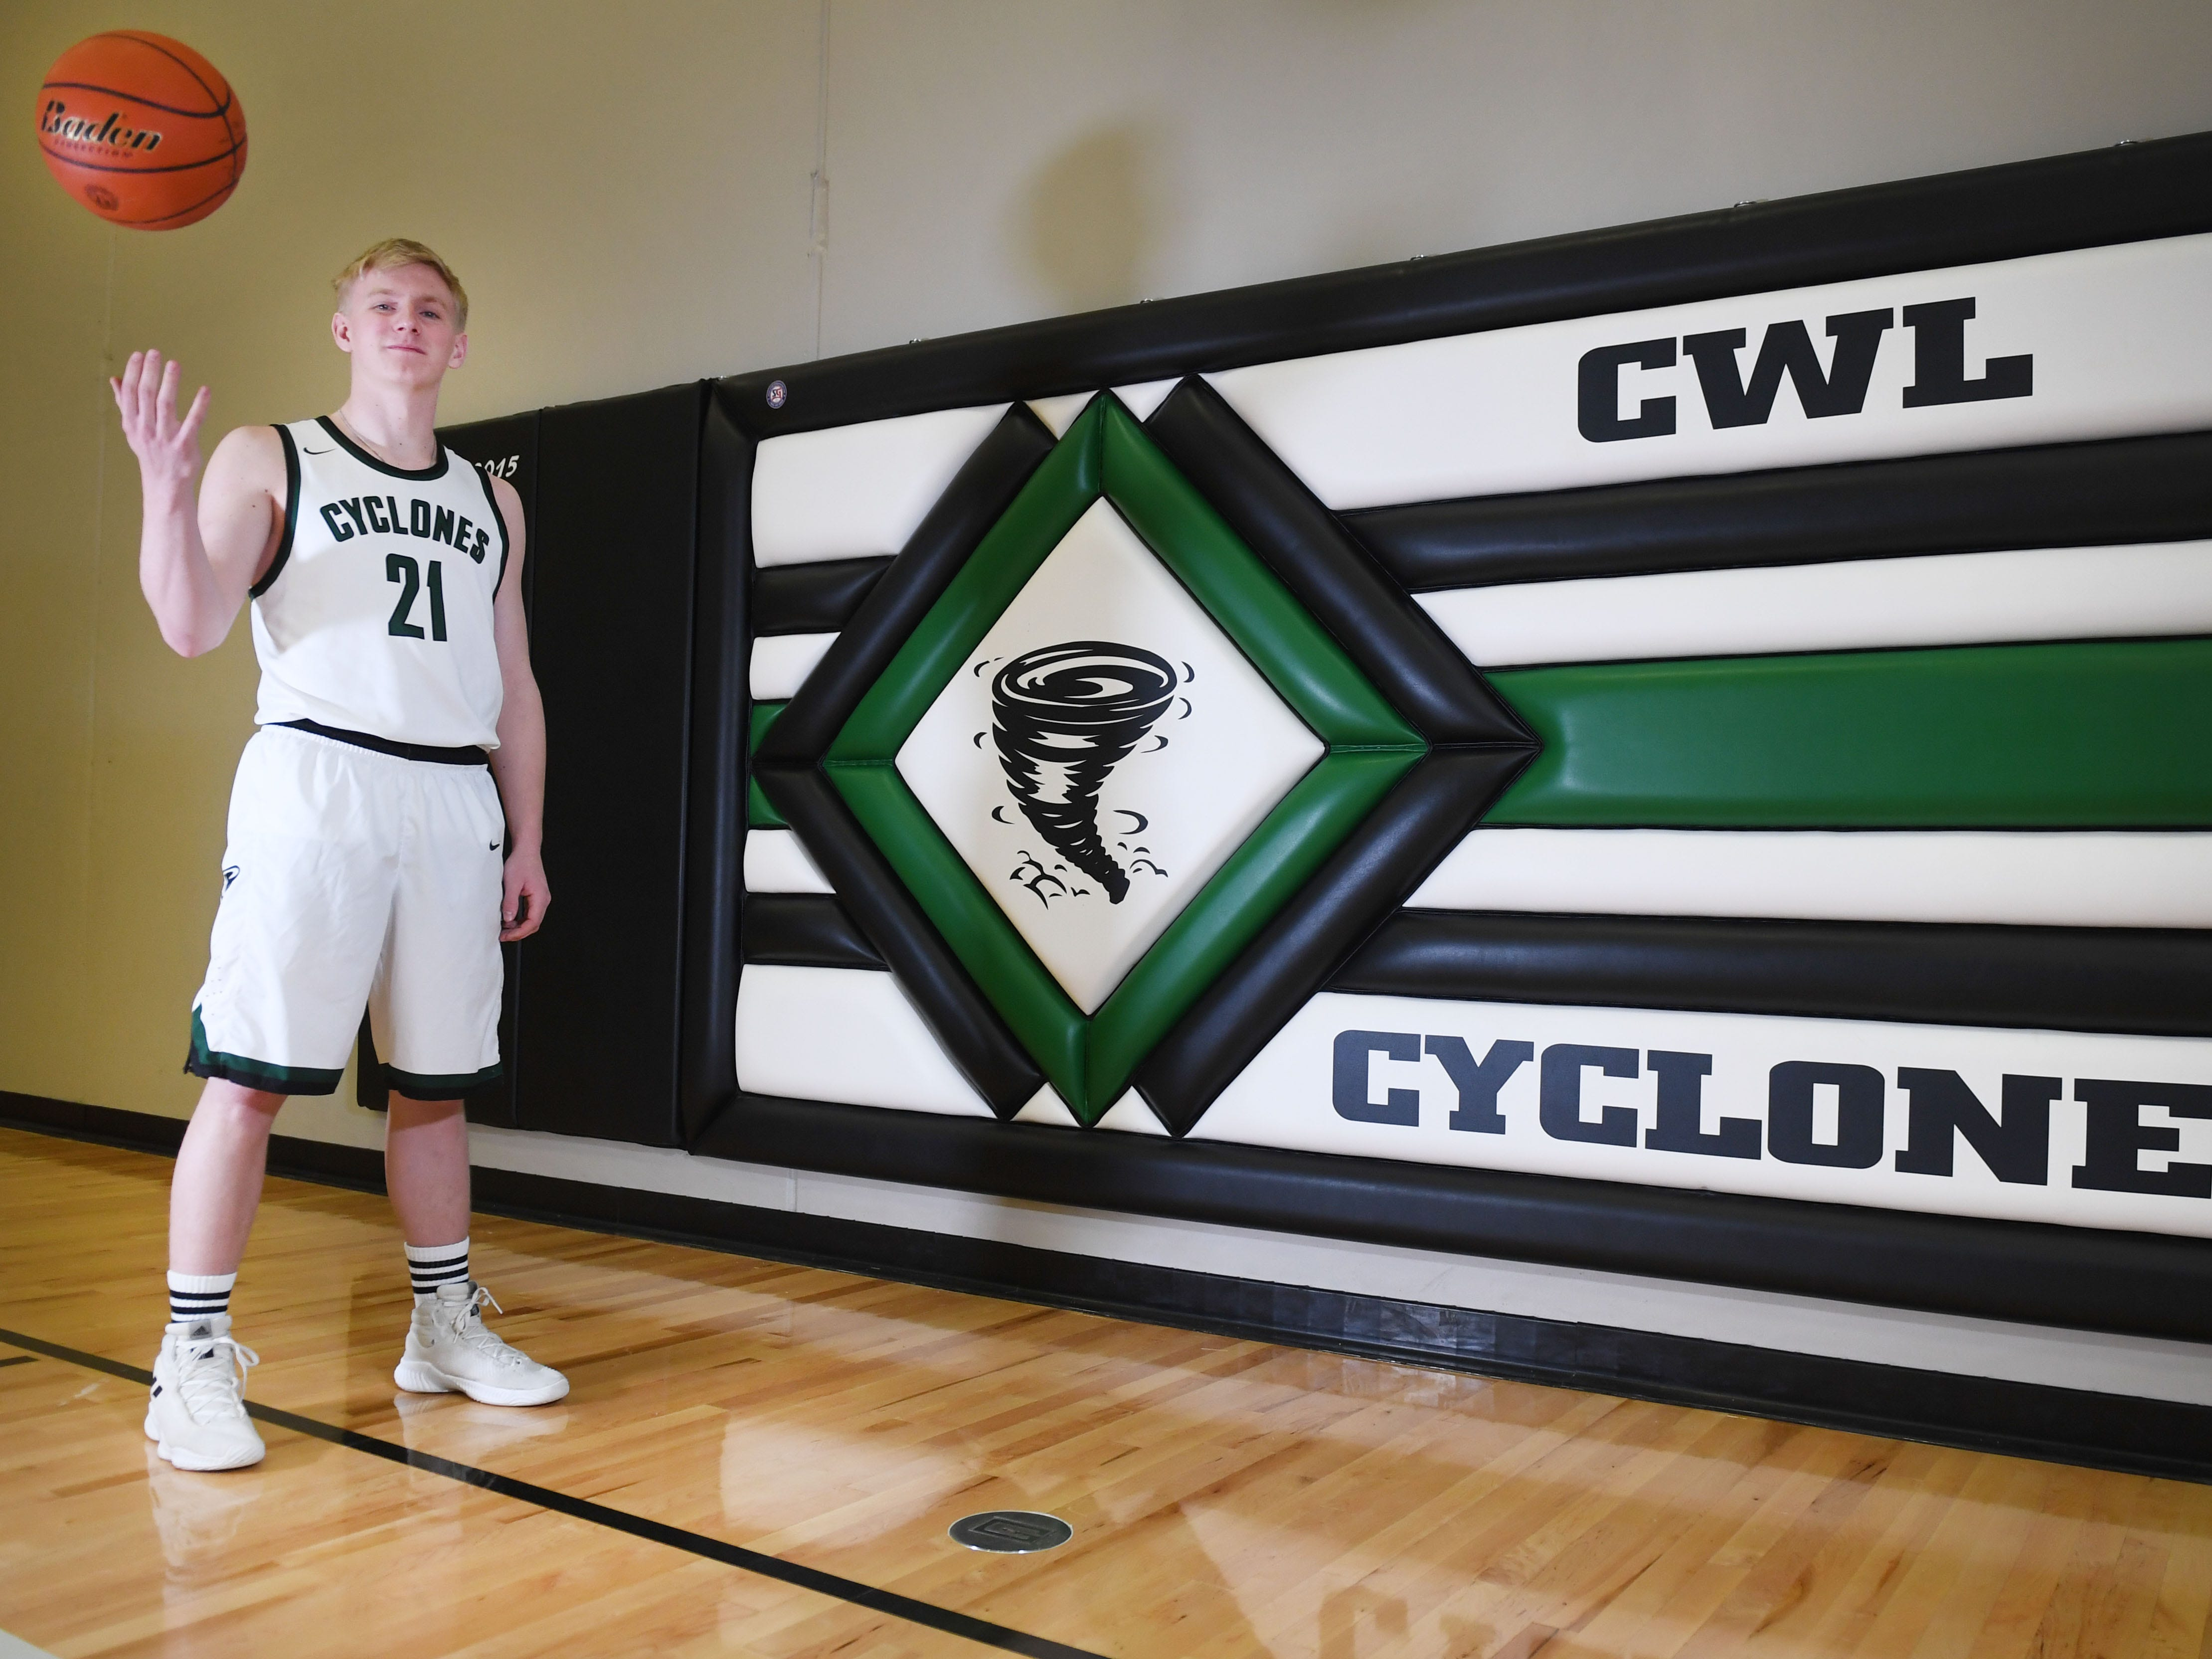 Willow Lake High School's Jacob Prouty Wednesday, March 27, in Willow Lake.